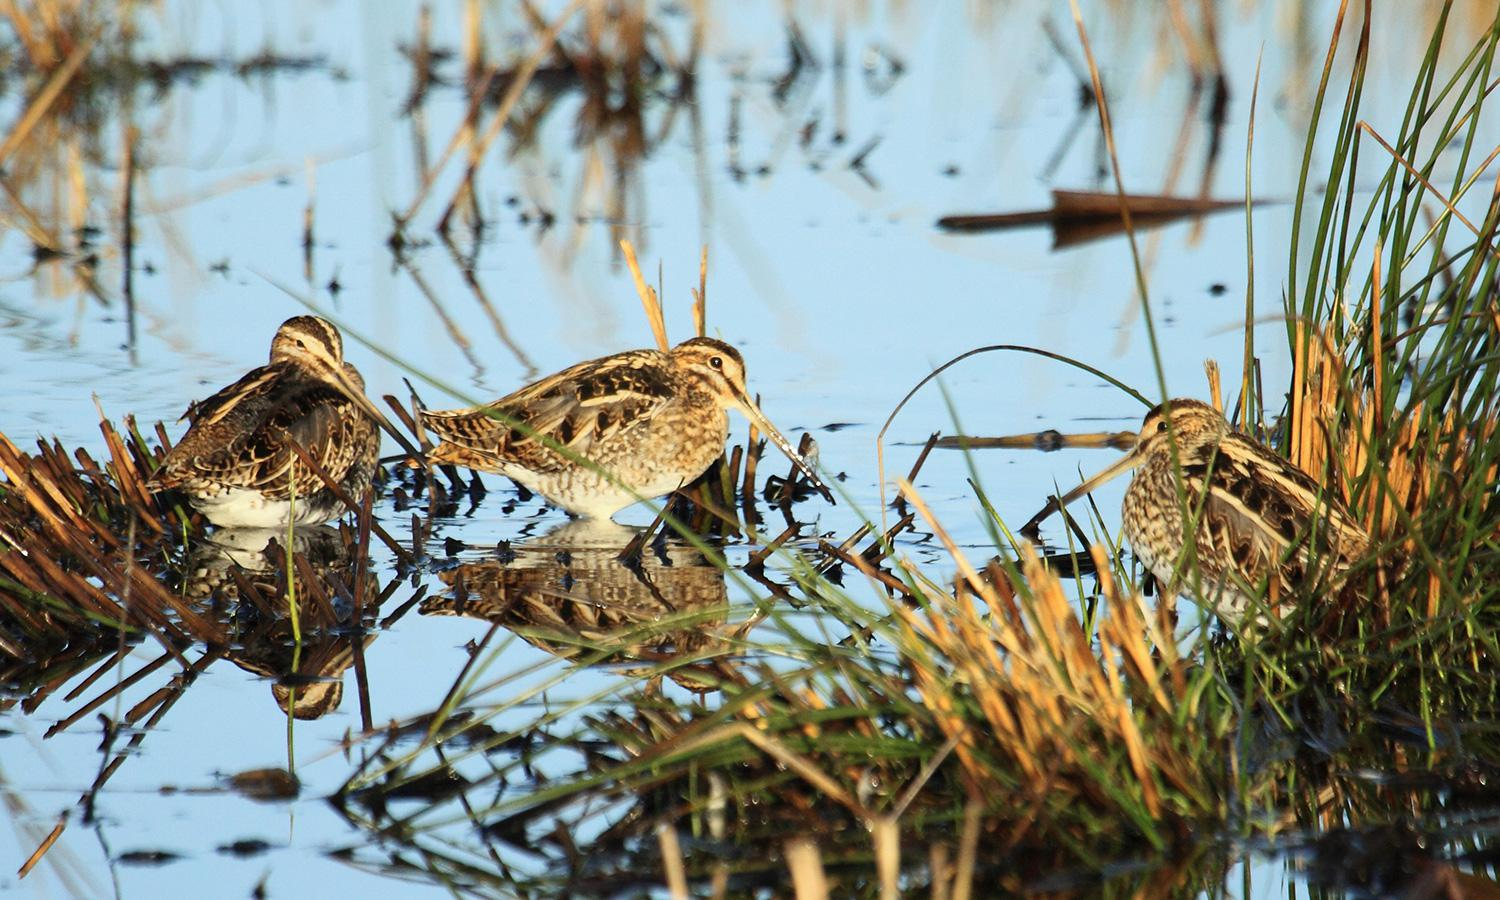 A pair of Snipes.